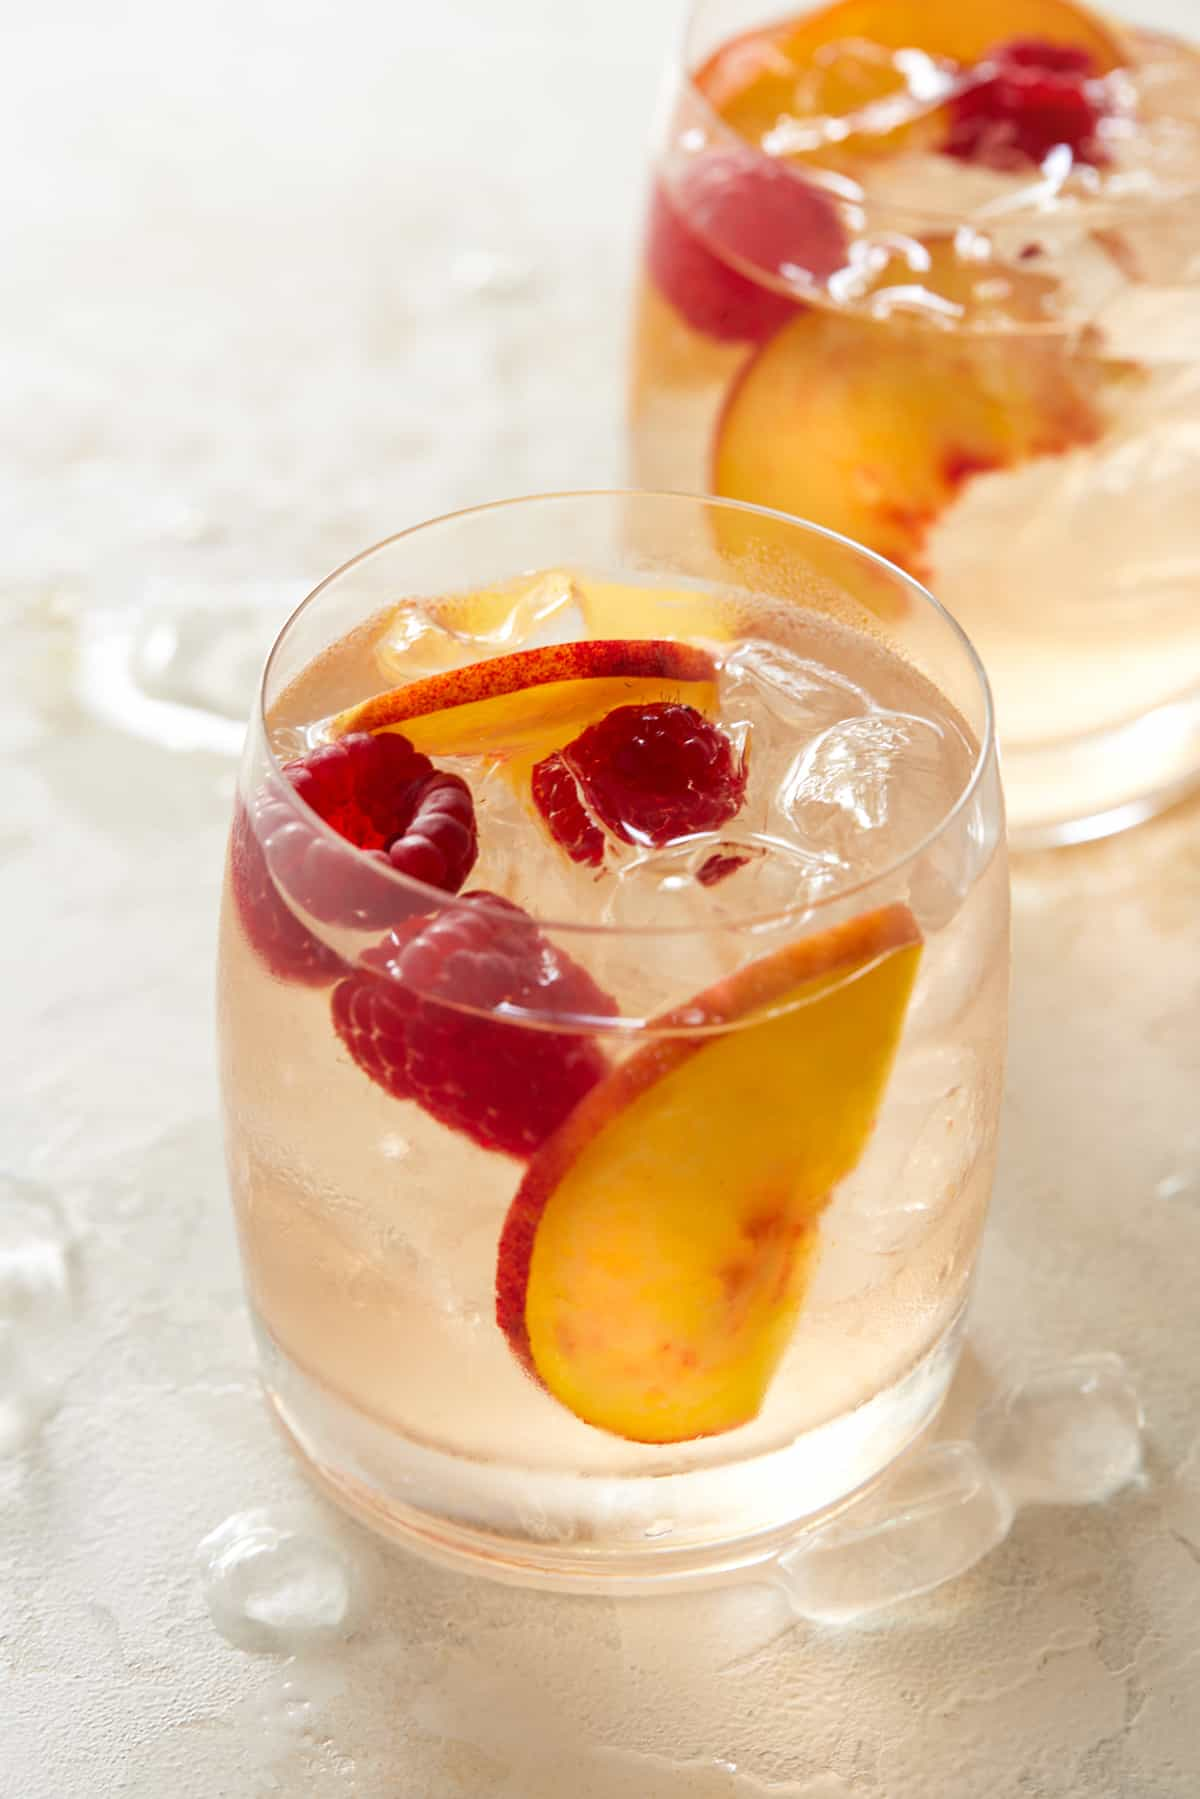 Two glasses of rosé sangria with ice, peach slices and raspberries.